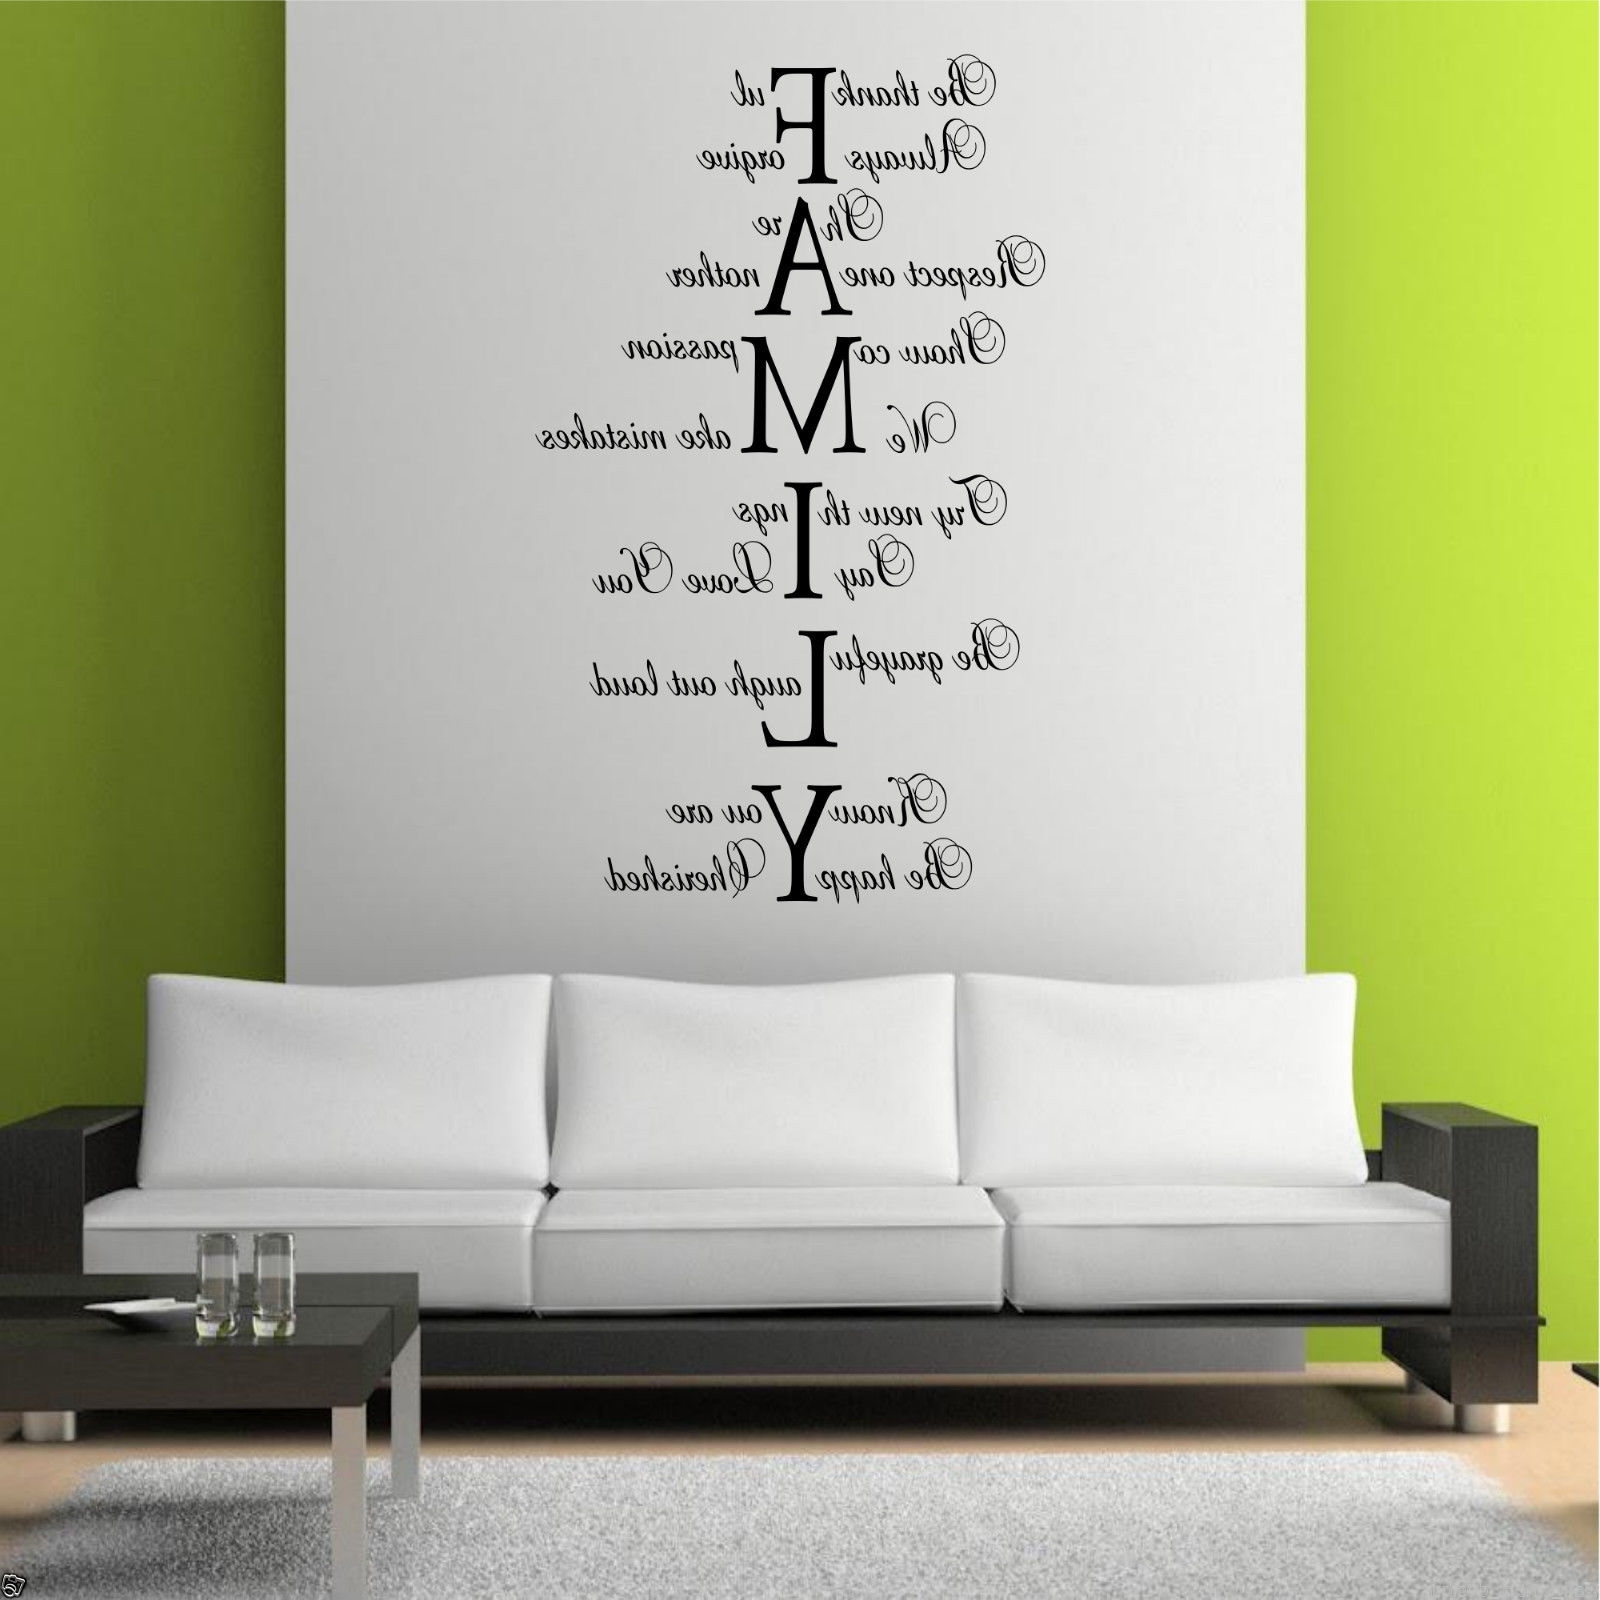 Fashionable B Awesome Www Wall Cool Www Wall Art Stickers – Wall Decoration Ideas For Wall Art Stickers (View 9 of 15)